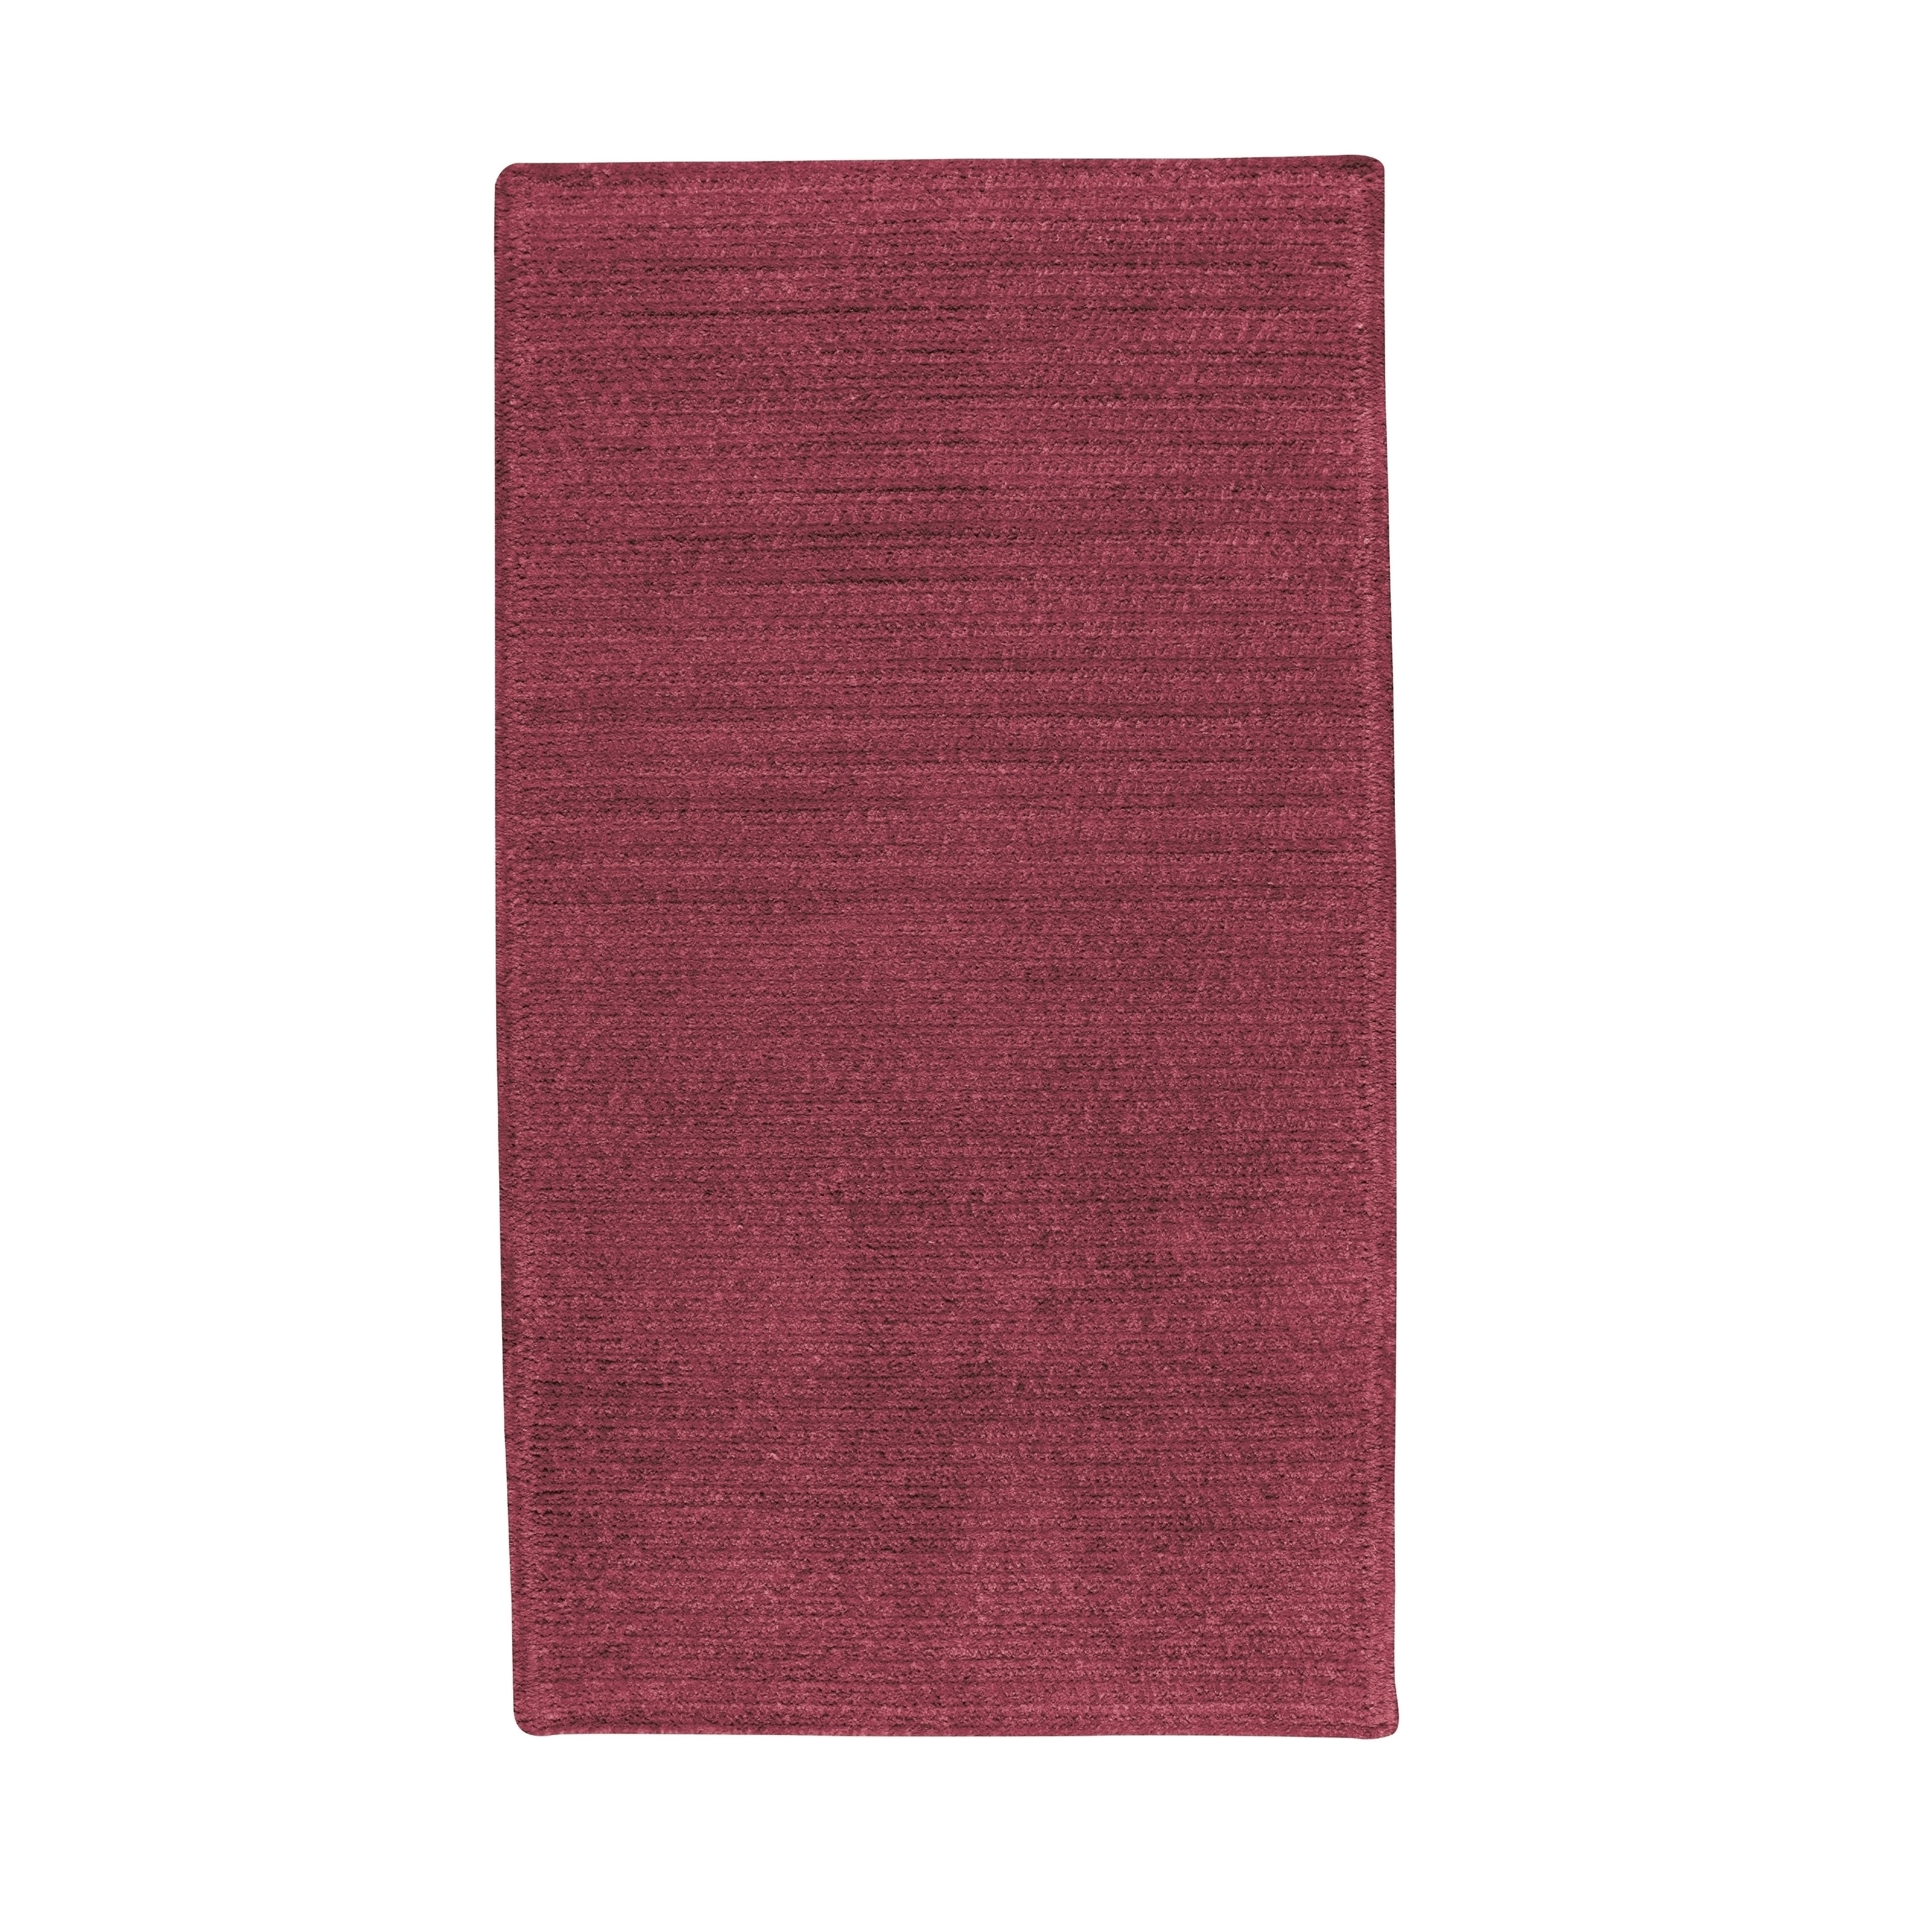 Brindille Chenille Made to Order Rug Rose (3' x 5') (Rose...